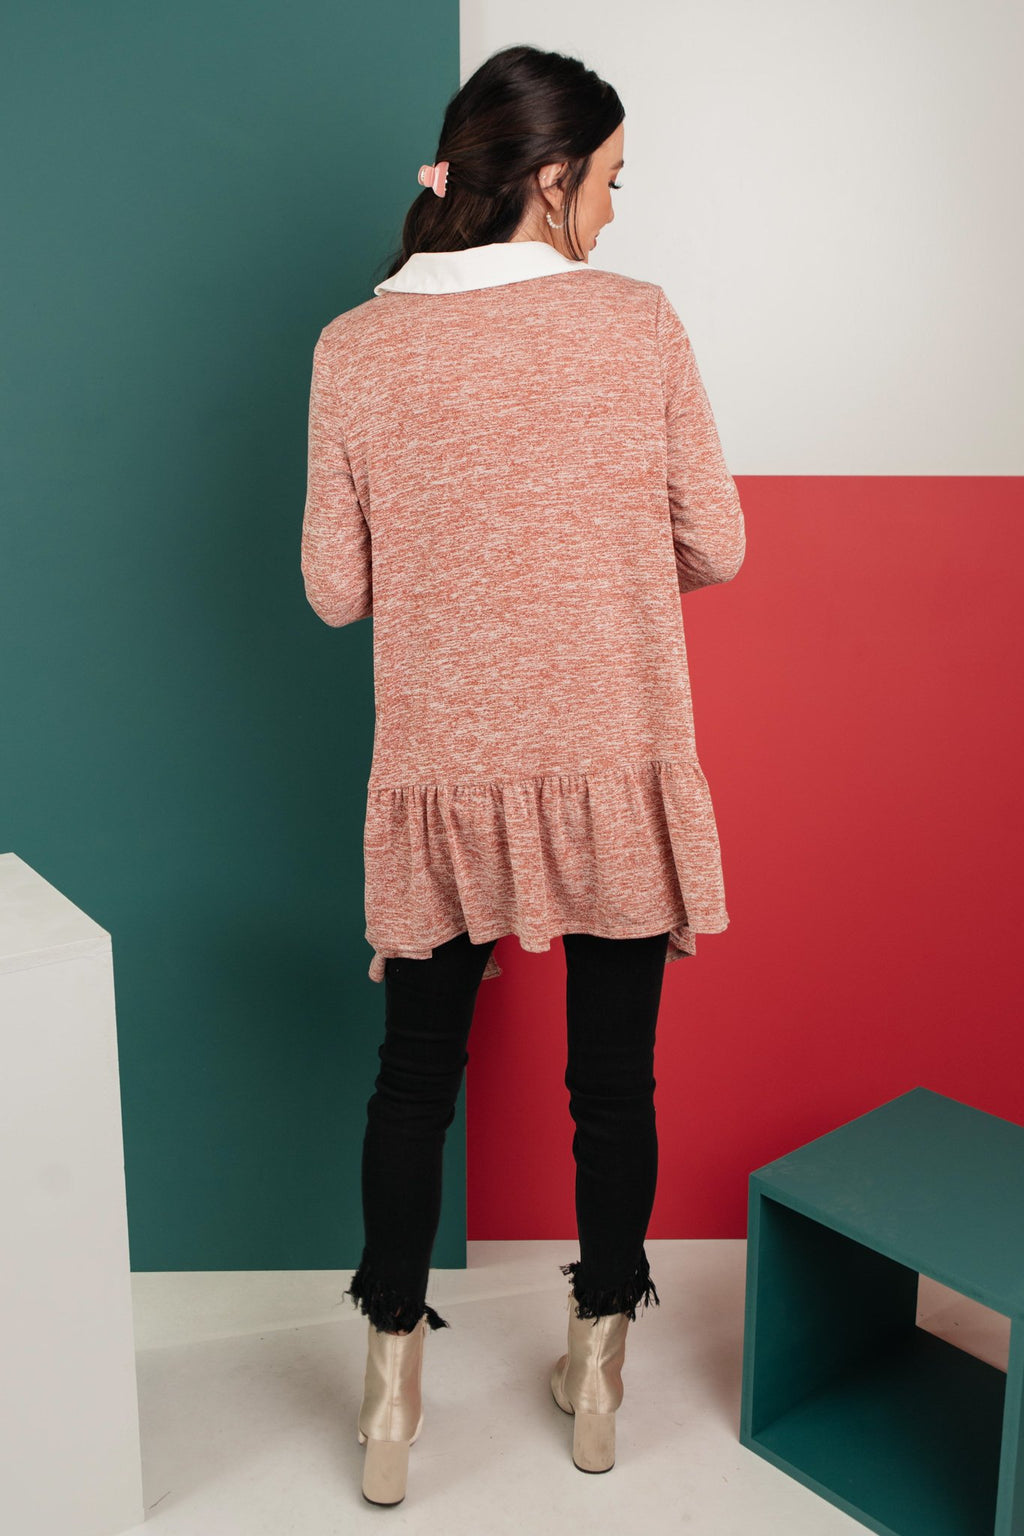 The Avalynn Heathered Cardigan in Crimson-1-5-2021, 1XL, 2XL, 3XL, Group A, Group B, Group C, Group U, Group X, Group Y, Group Z, Large, Made in the USA, Medium, Small, Tops, XL, XS-Womens Artisan USA American Made Clothing Accessories